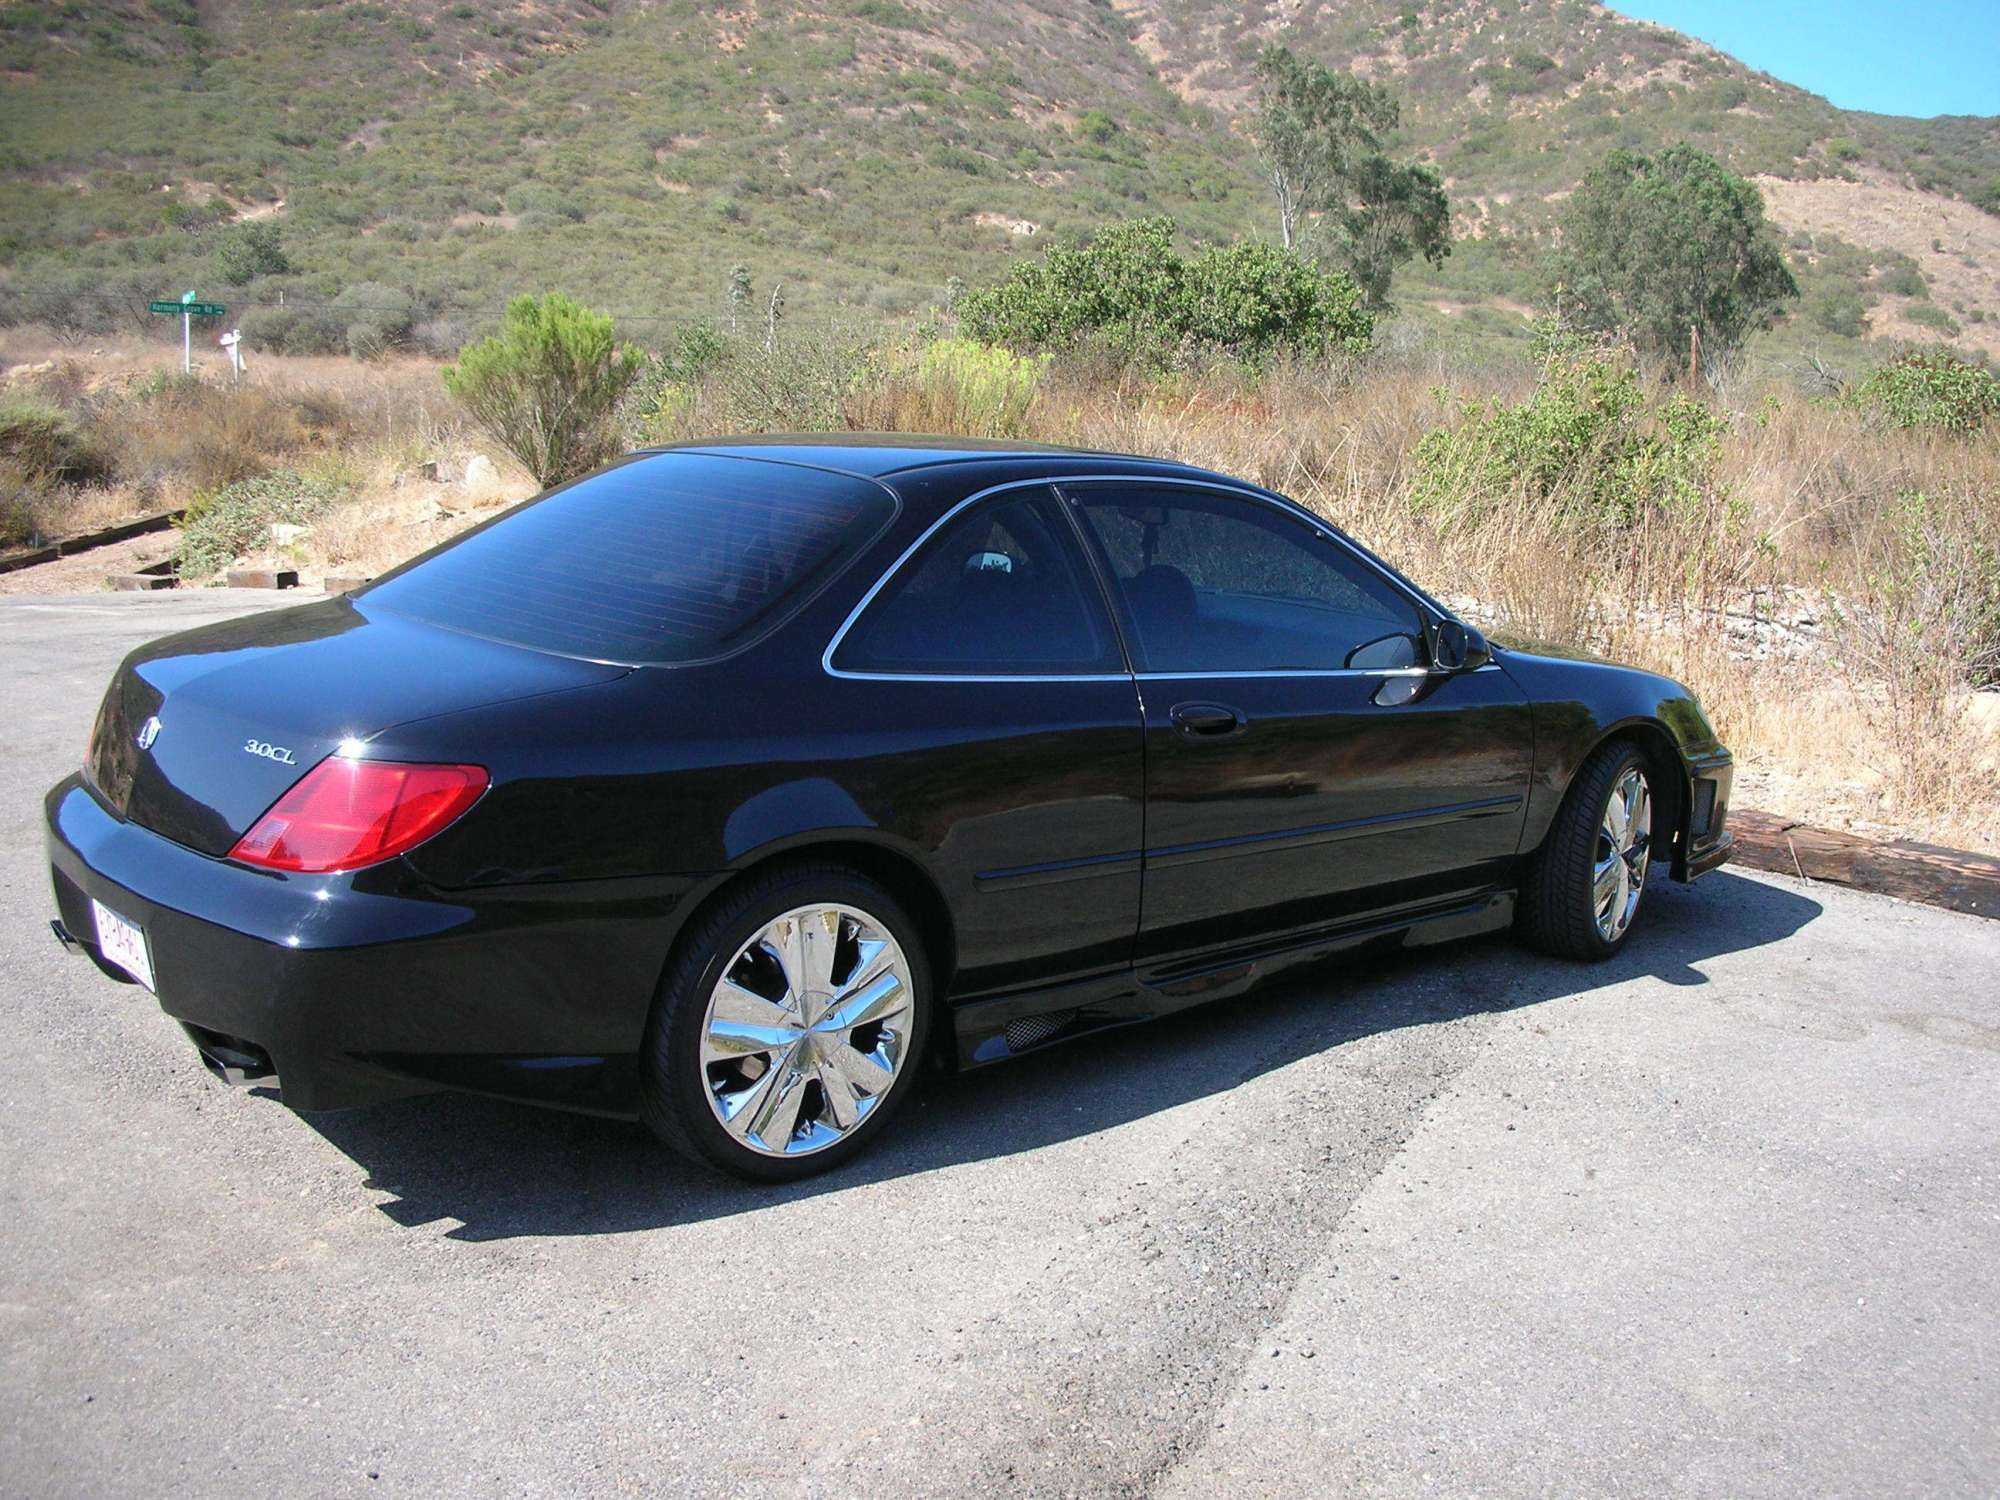 hight resolution of  bam bam wh1ps 1998 acura cl 32589480001 original